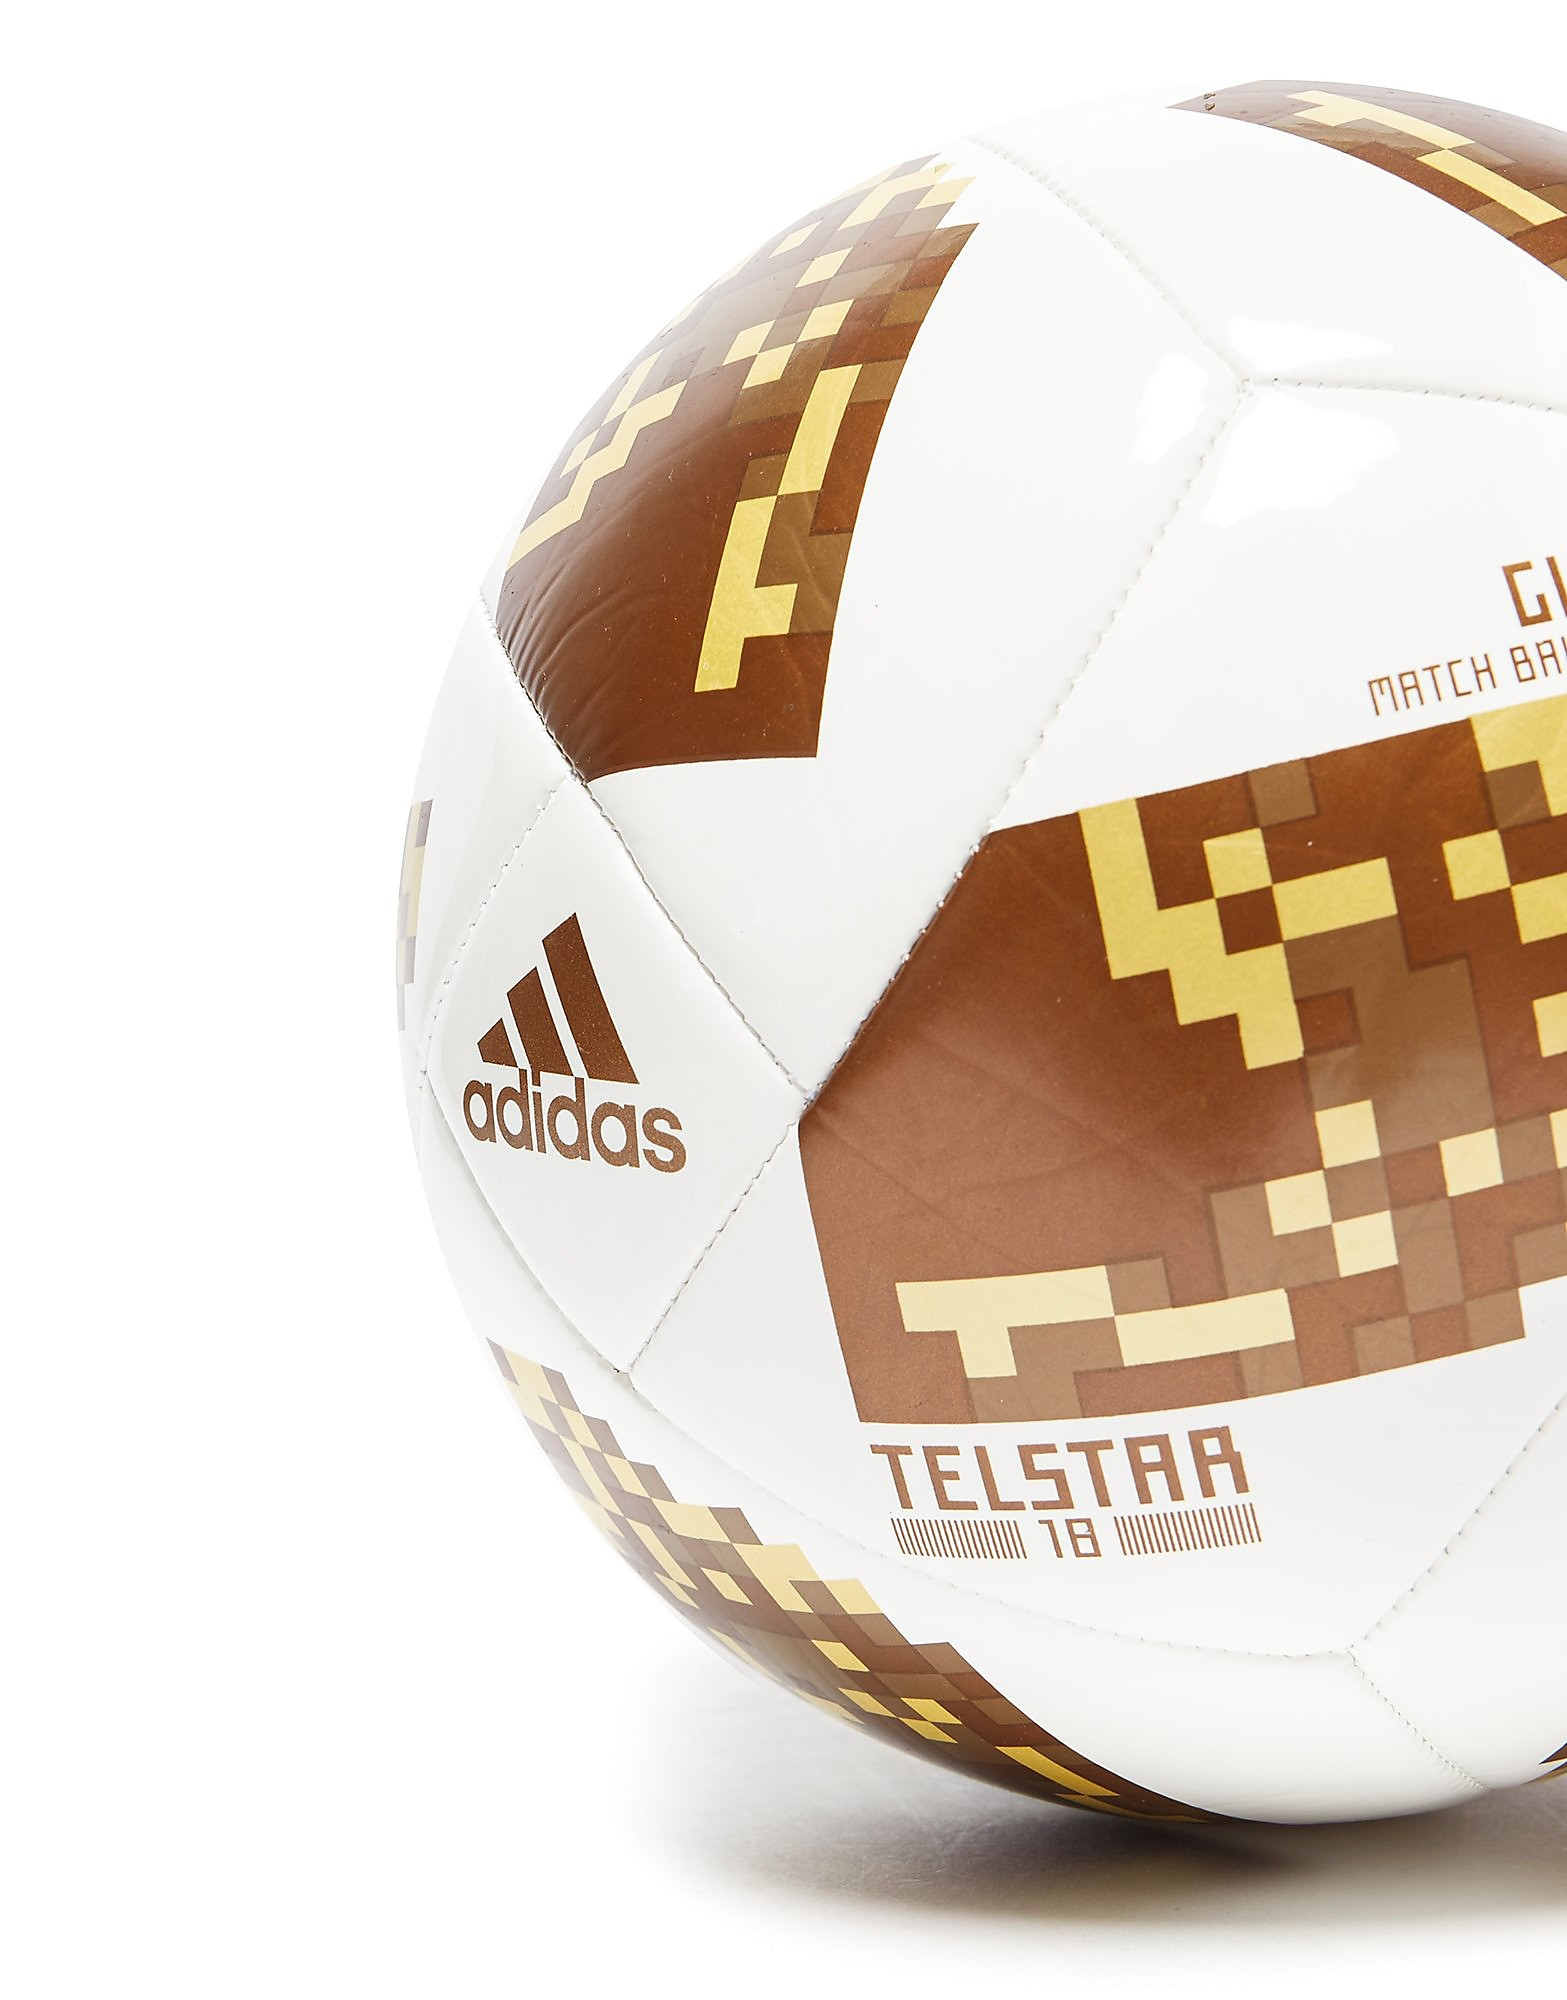 adidas World Cup 2018 Top Glider Football